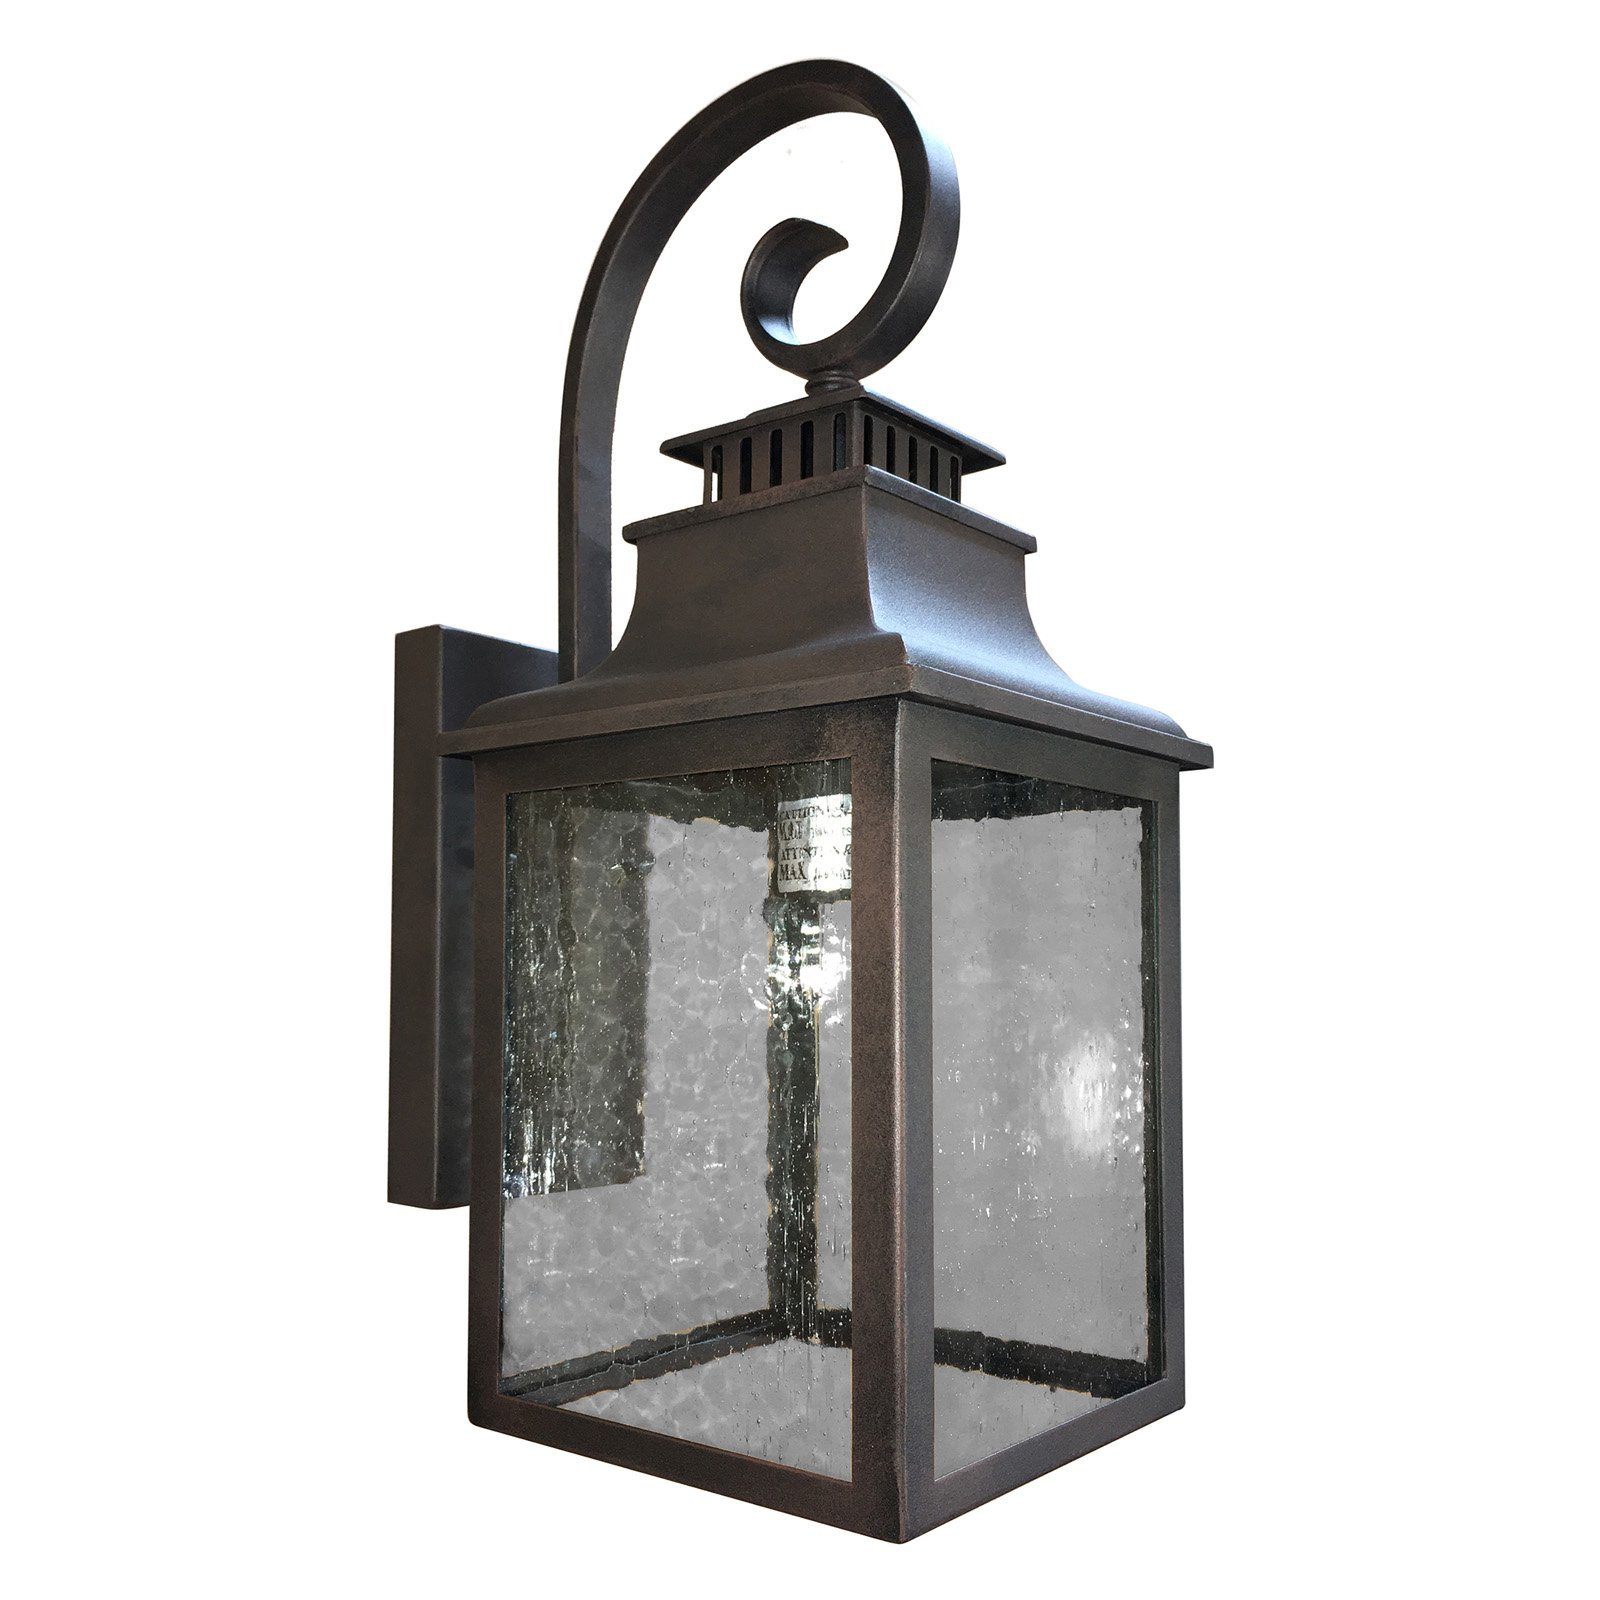 1 Light Outdoor Wall Mounted Lighting In Rustic Finish